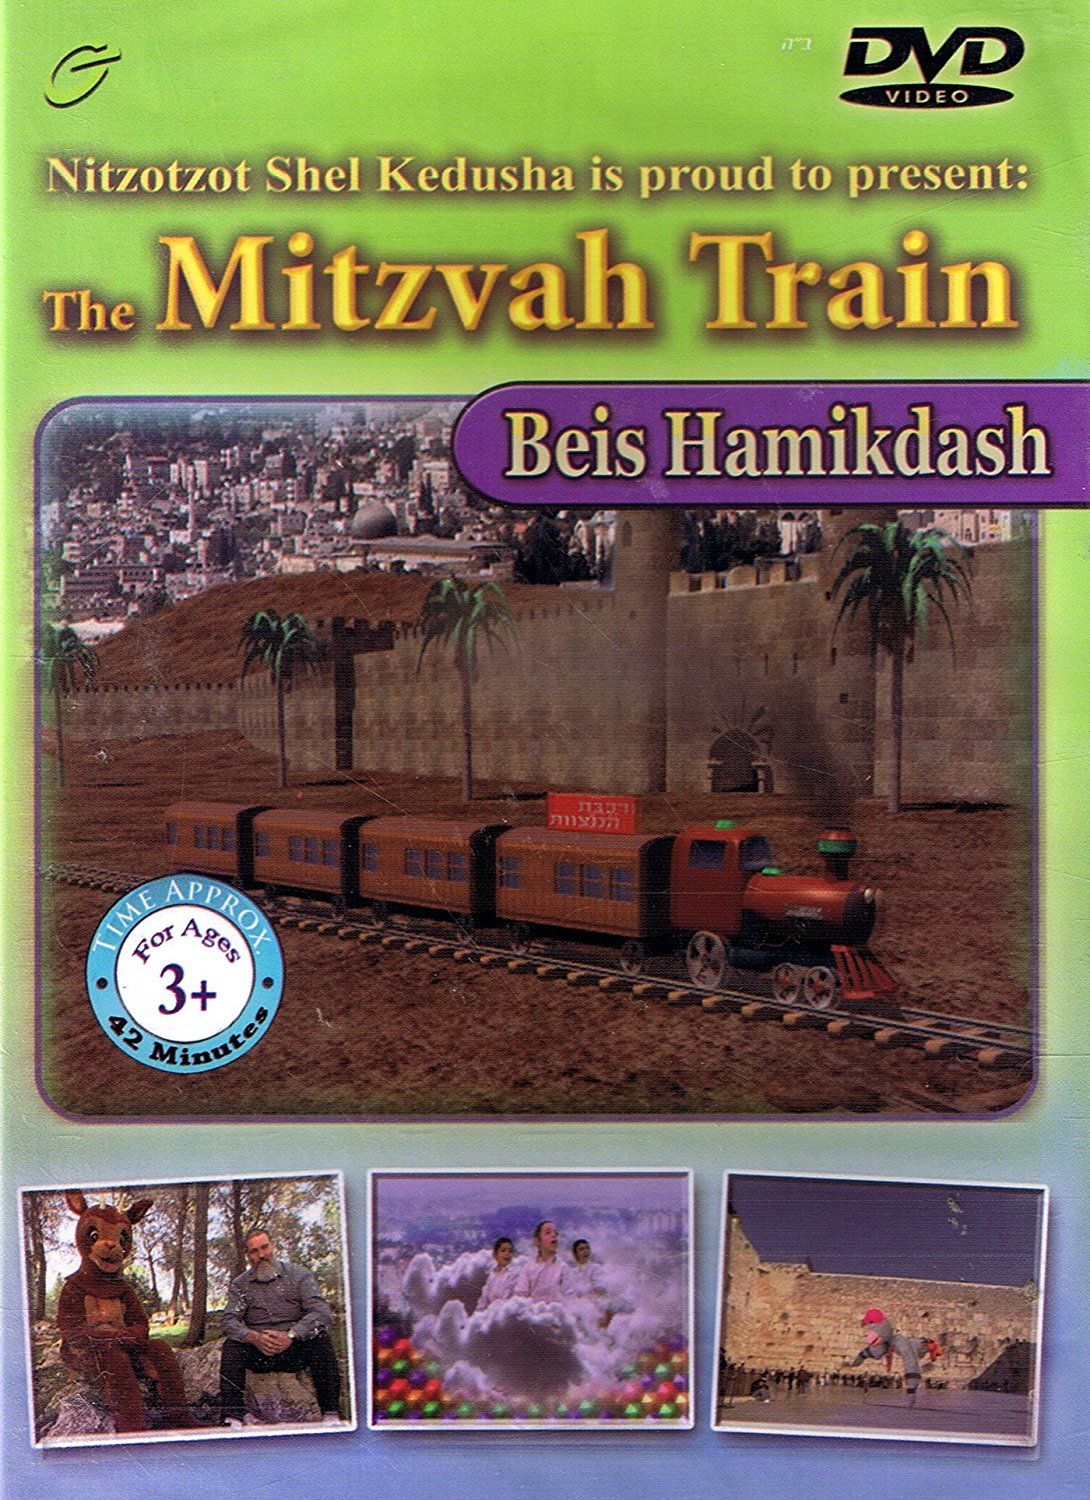 The Mitzvah Train: Beis Hamikdash - DVD